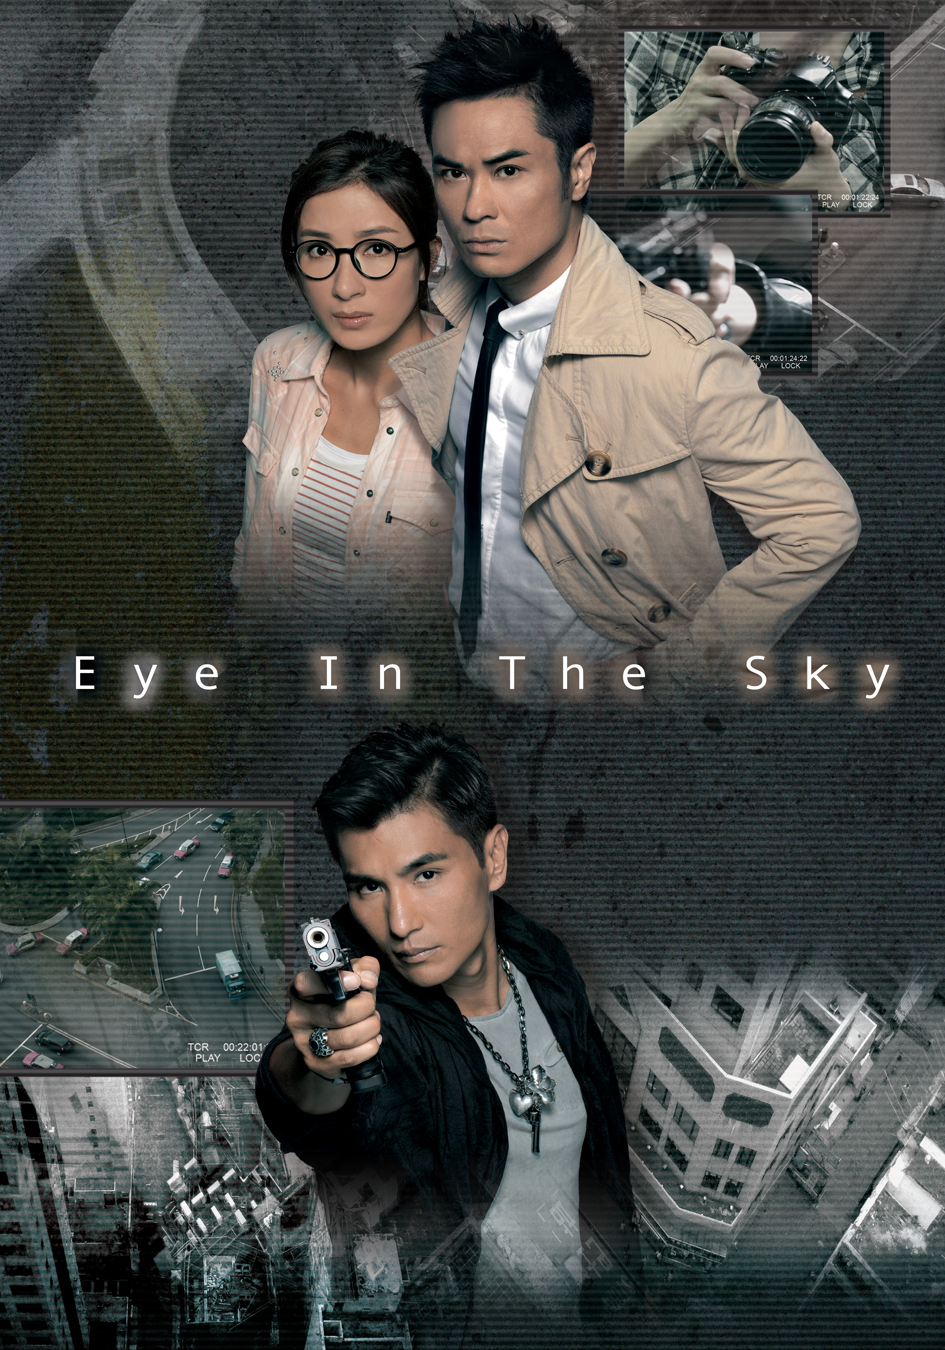 Eye in the Sky-Eye in the Sky